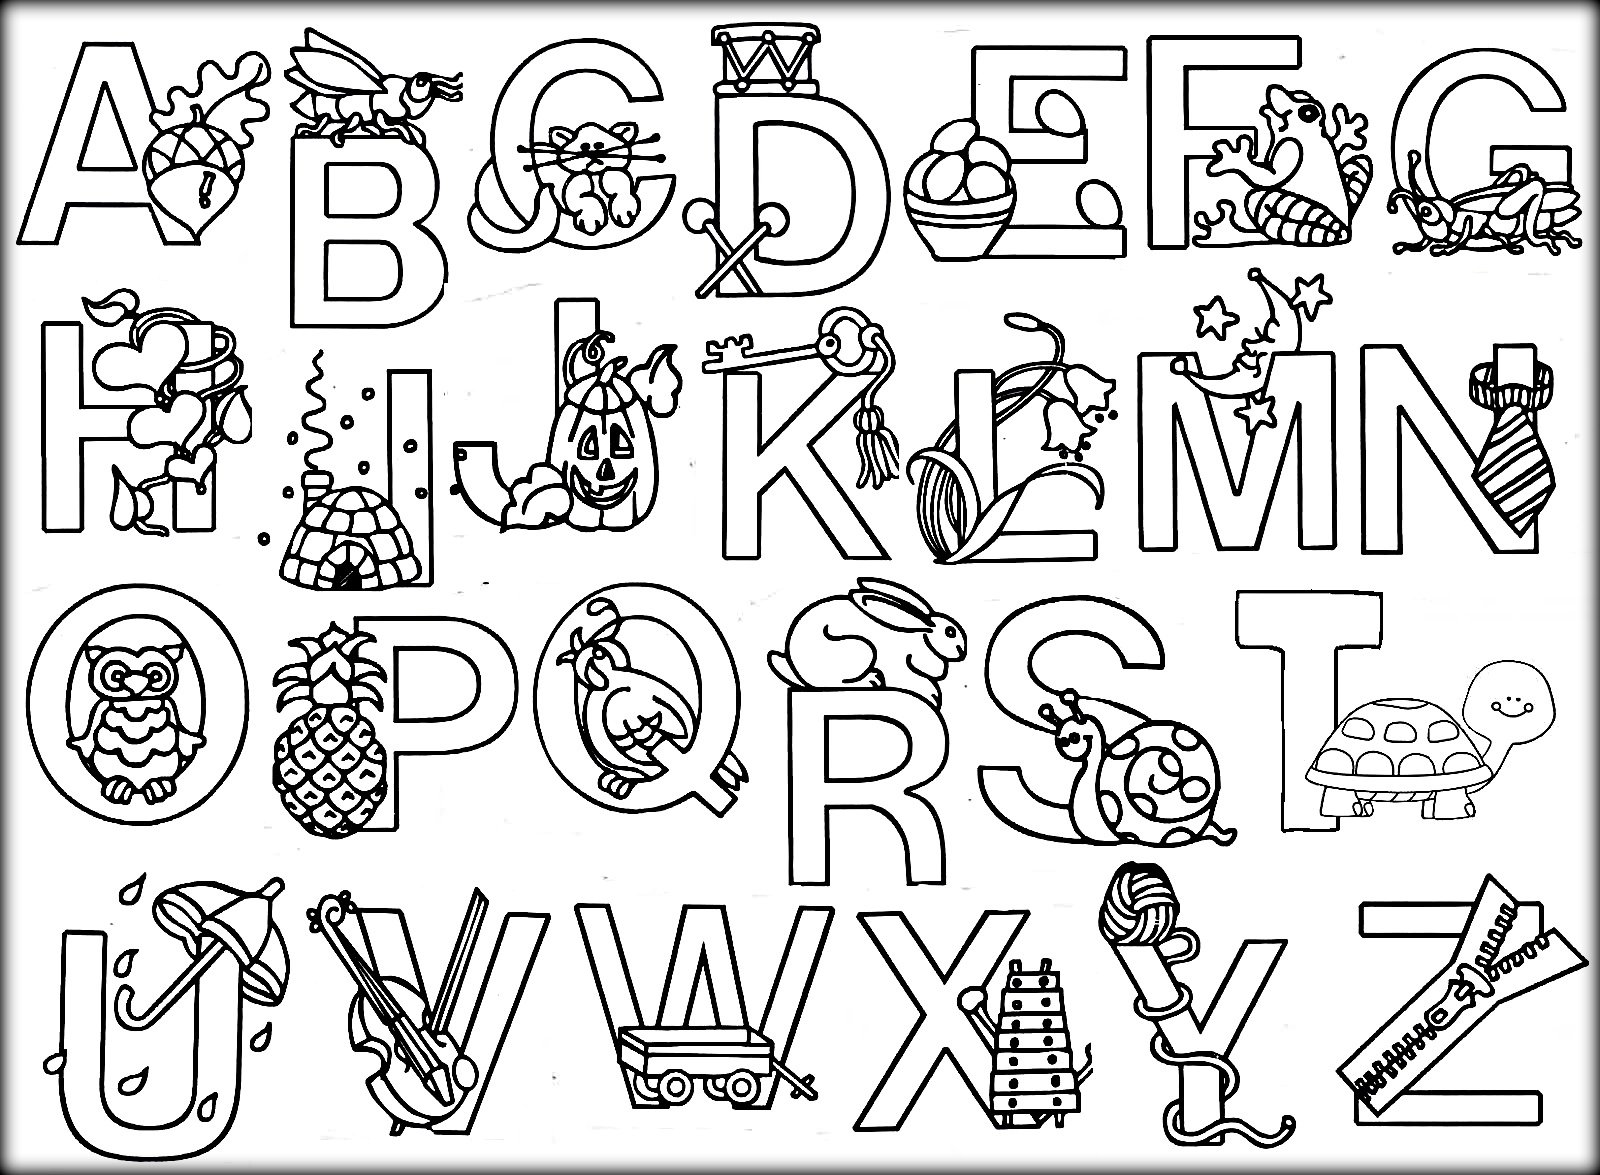 Alphabet Colouring Page #22784 - Free Printable Alphabet Coloring Pages